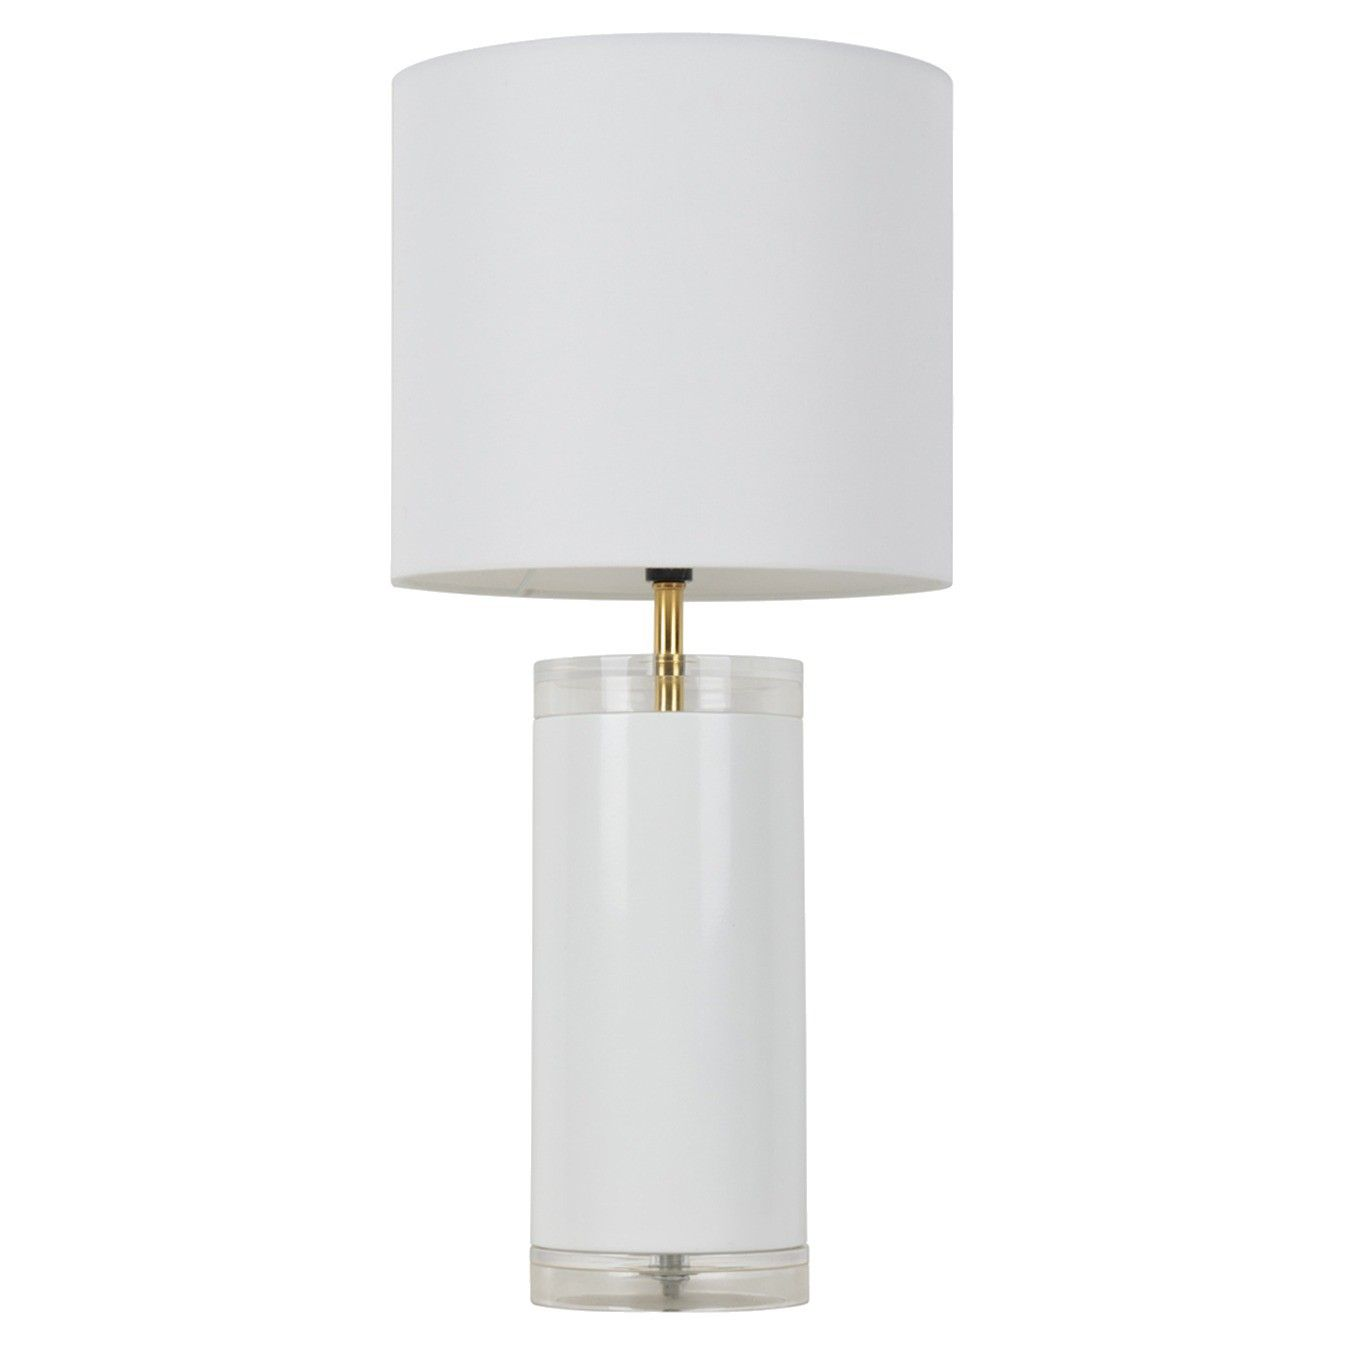 31 99 At Target Acrylic Table Lamp Includes Cfl Bulb Room Essentials White Table Lamp Table Lamp Target Table Lamps